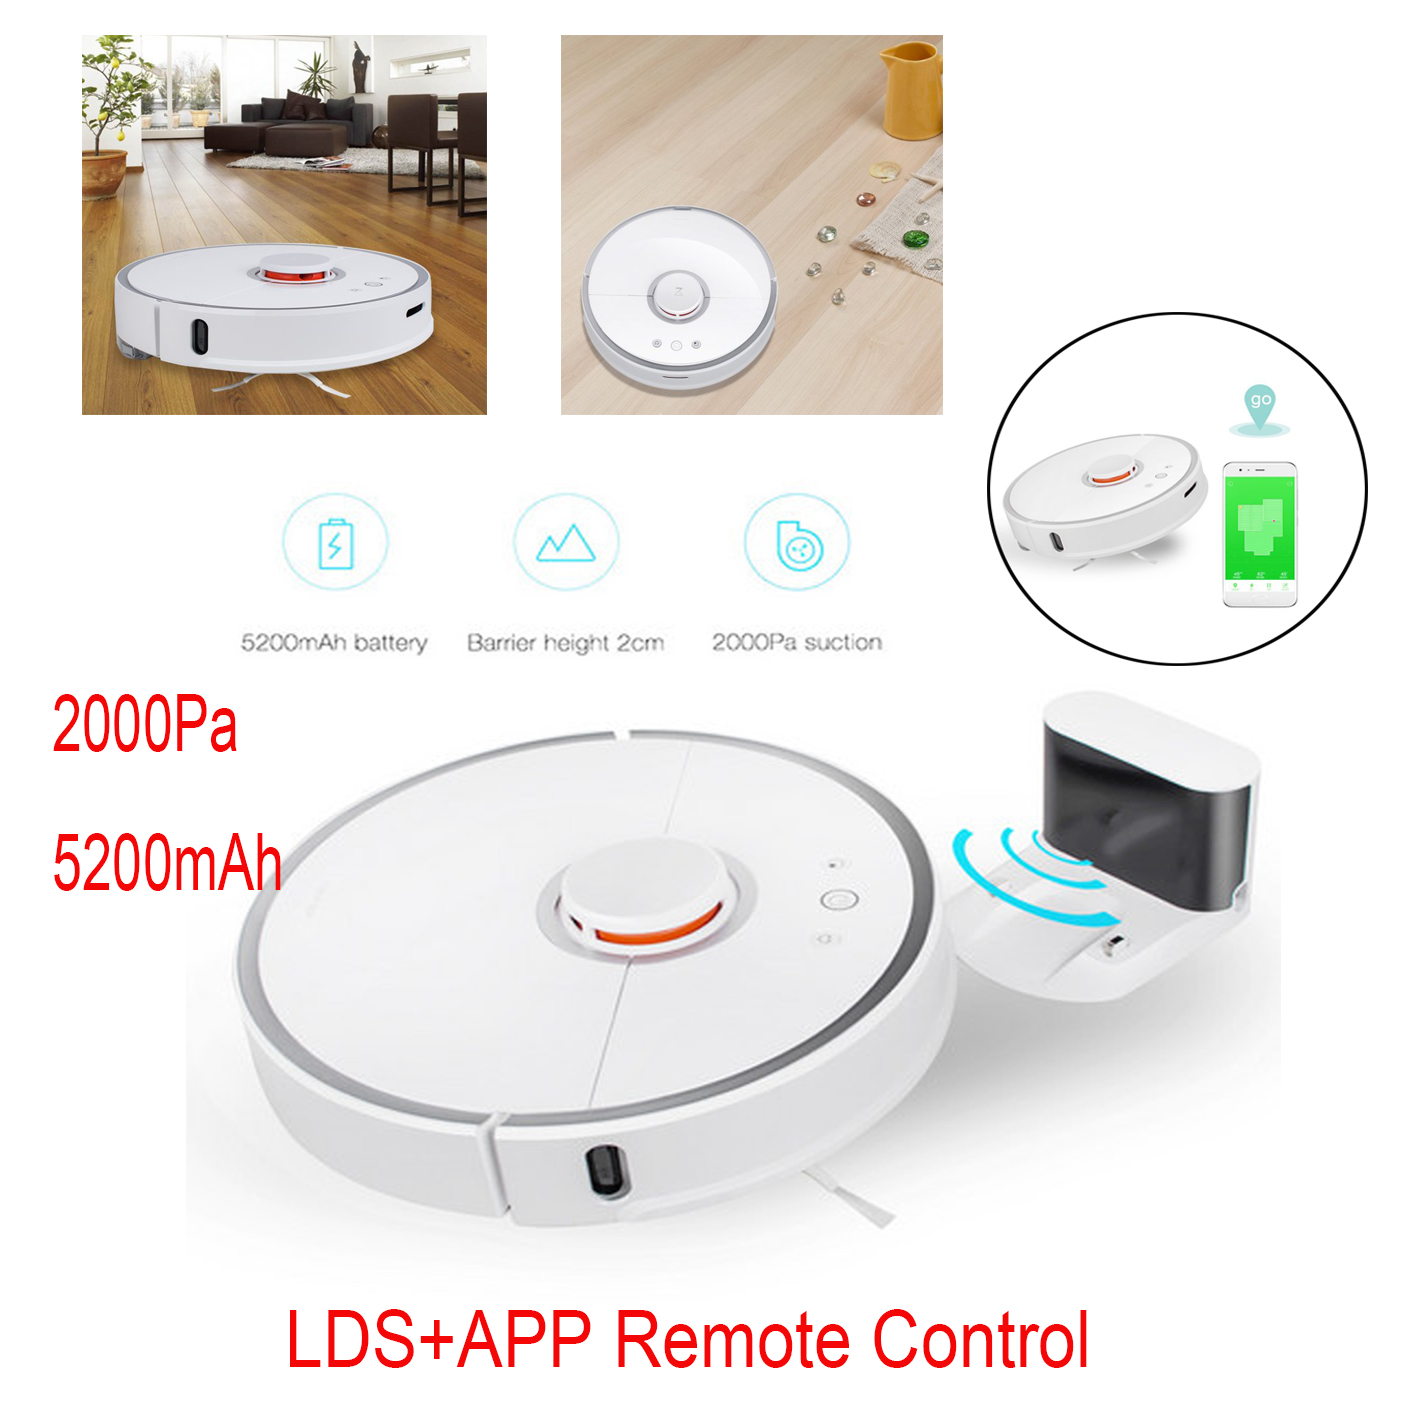 Roborock S5 Robotic Vacuum and Mop Cleaner 2000Pa Super Power Suction /&Wi-Fi Connectivity and Smart Navigating Robot Vacuum with 5200mAh Battery Capacity,Poland Service and Warranty White